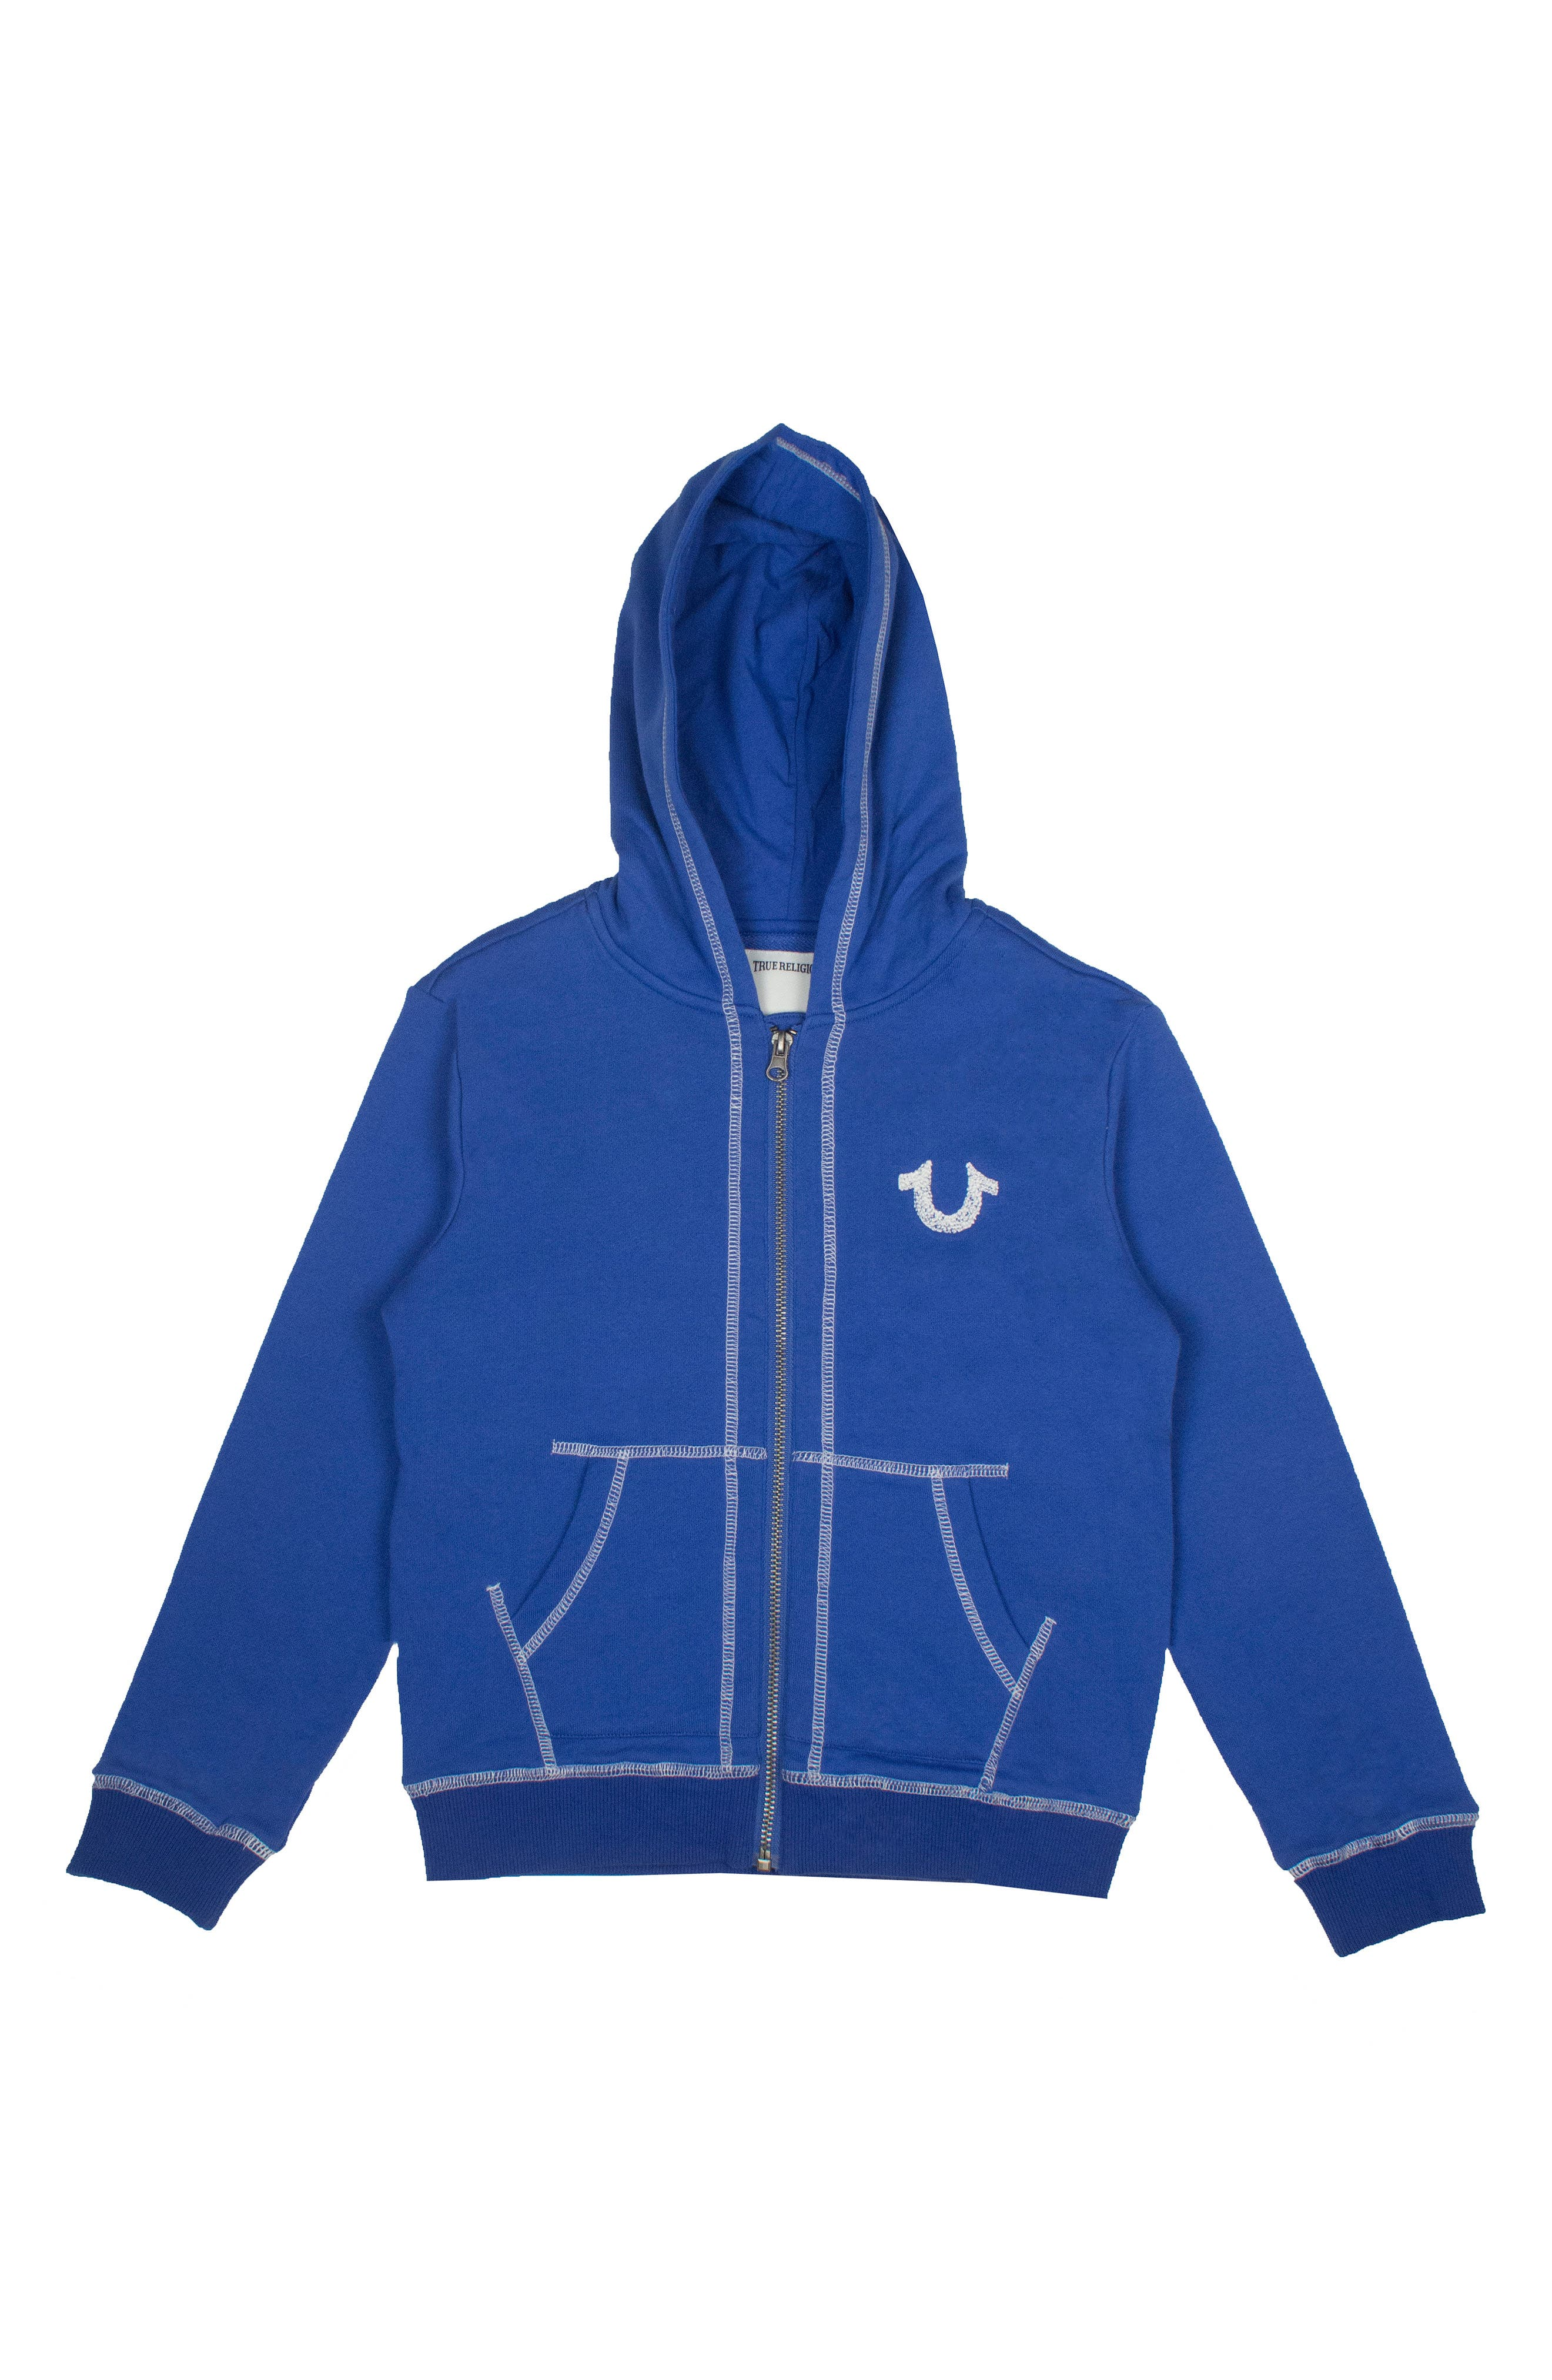 Alternate Image 1 Selected - True Religion Brand Jeans Shoe String Zip Hoodie (Toddler Boys & Little Boys)